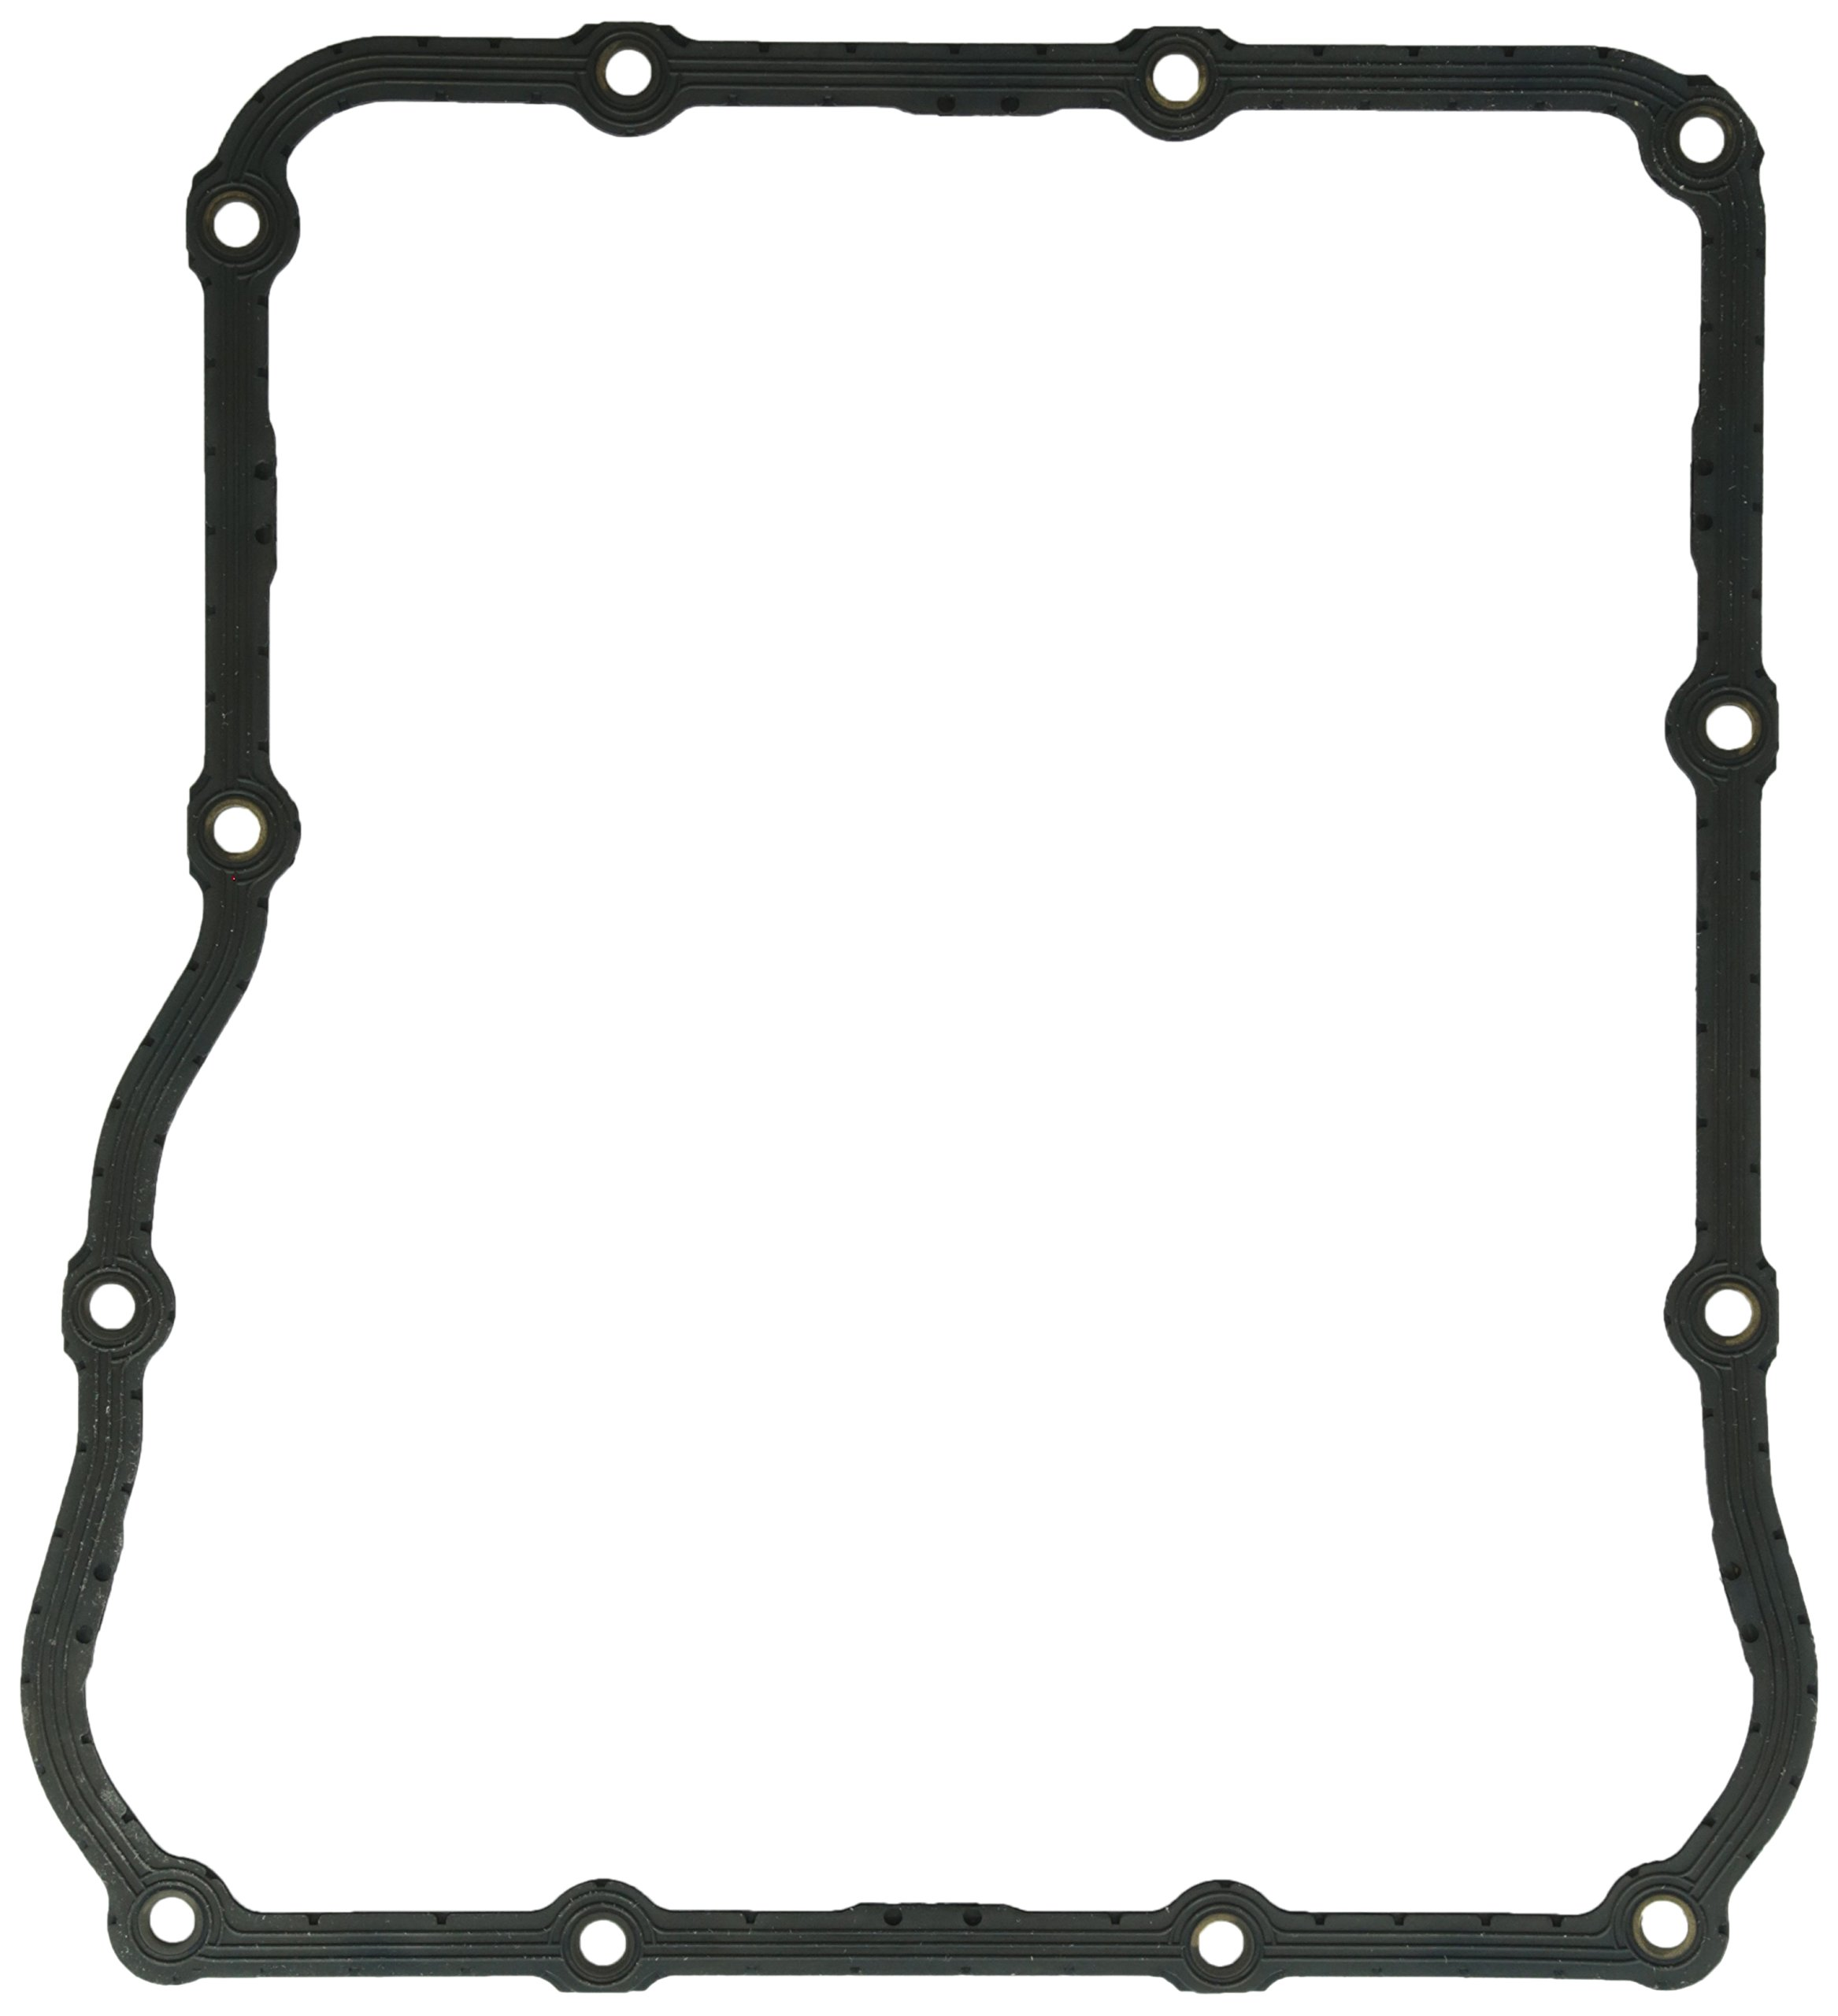 ACDelco 29549684 GM Original Equipment Automatic Transmission Fluid Pan Gasket by ACDelco